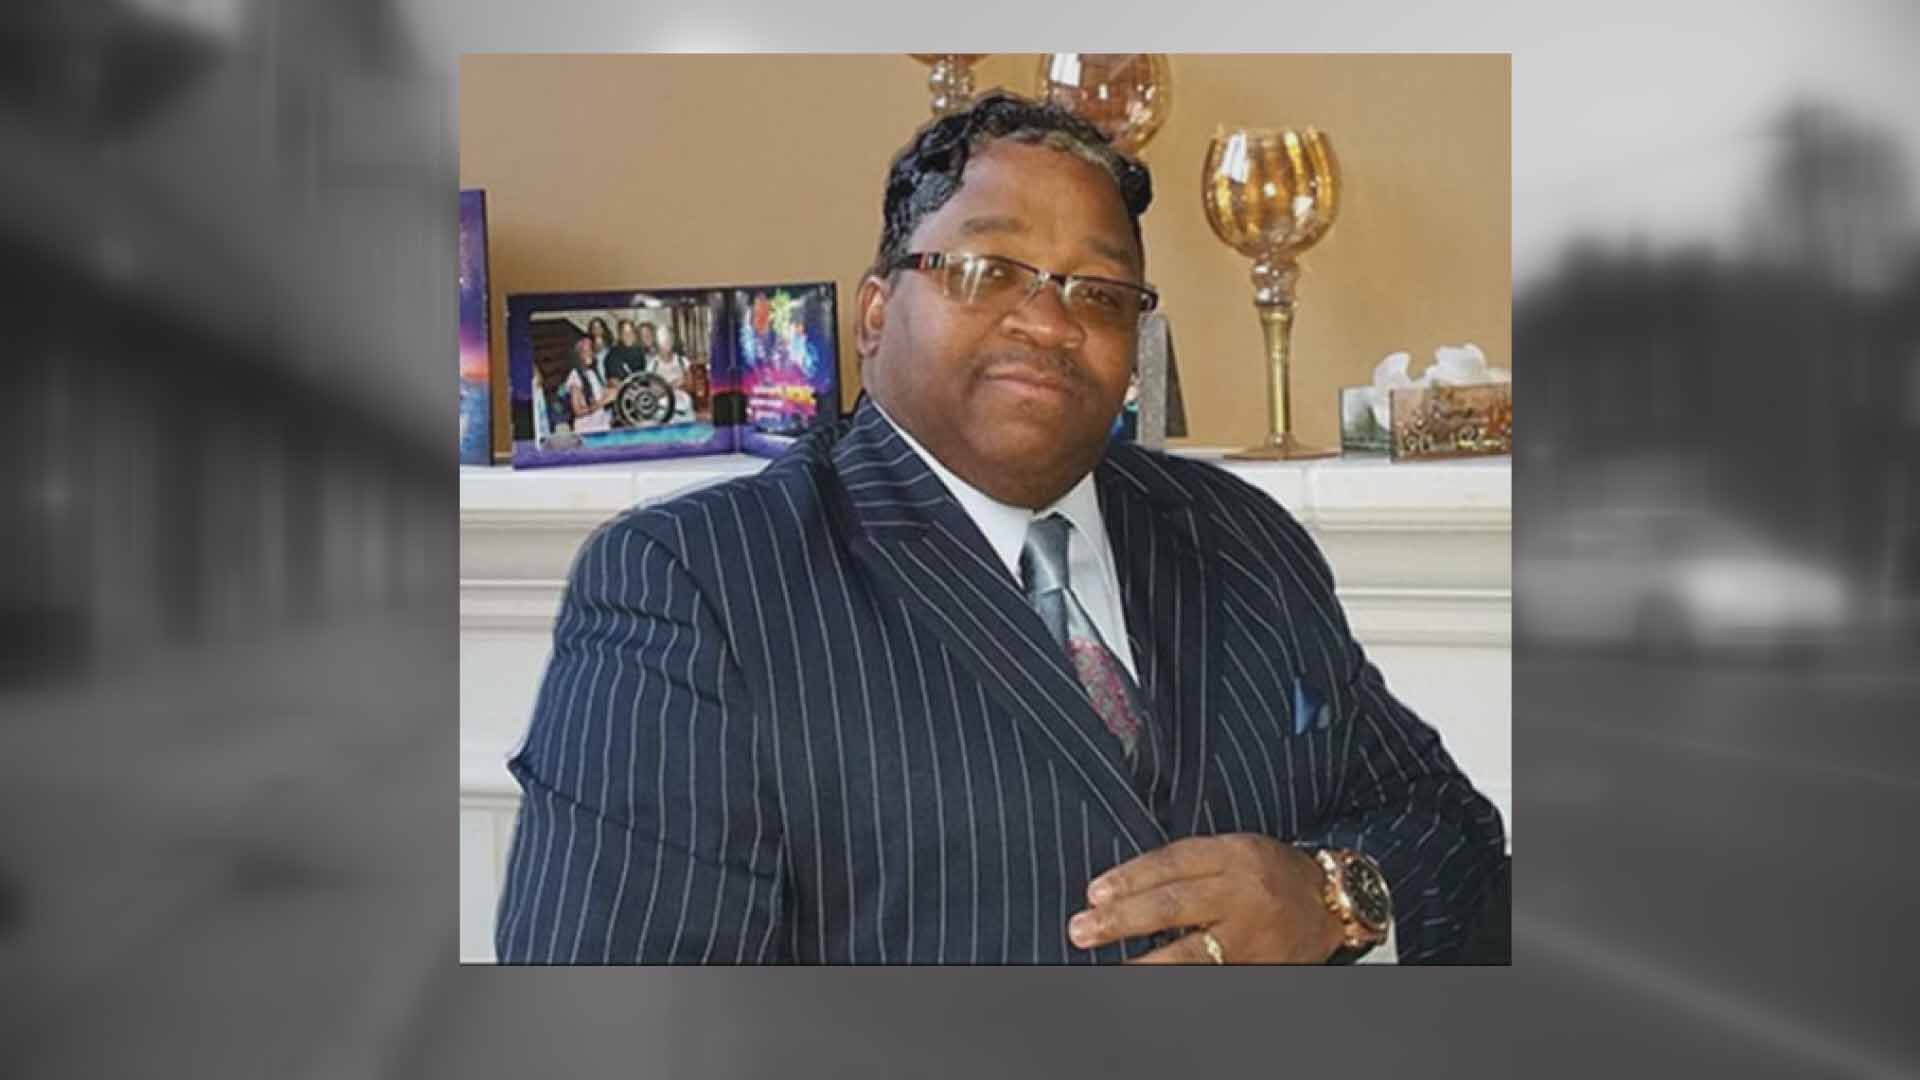 The BBB is warning against investing money in the Stafford Financial Firm, run by Pastor Mark Stafford (pictured). Credit: KMOV